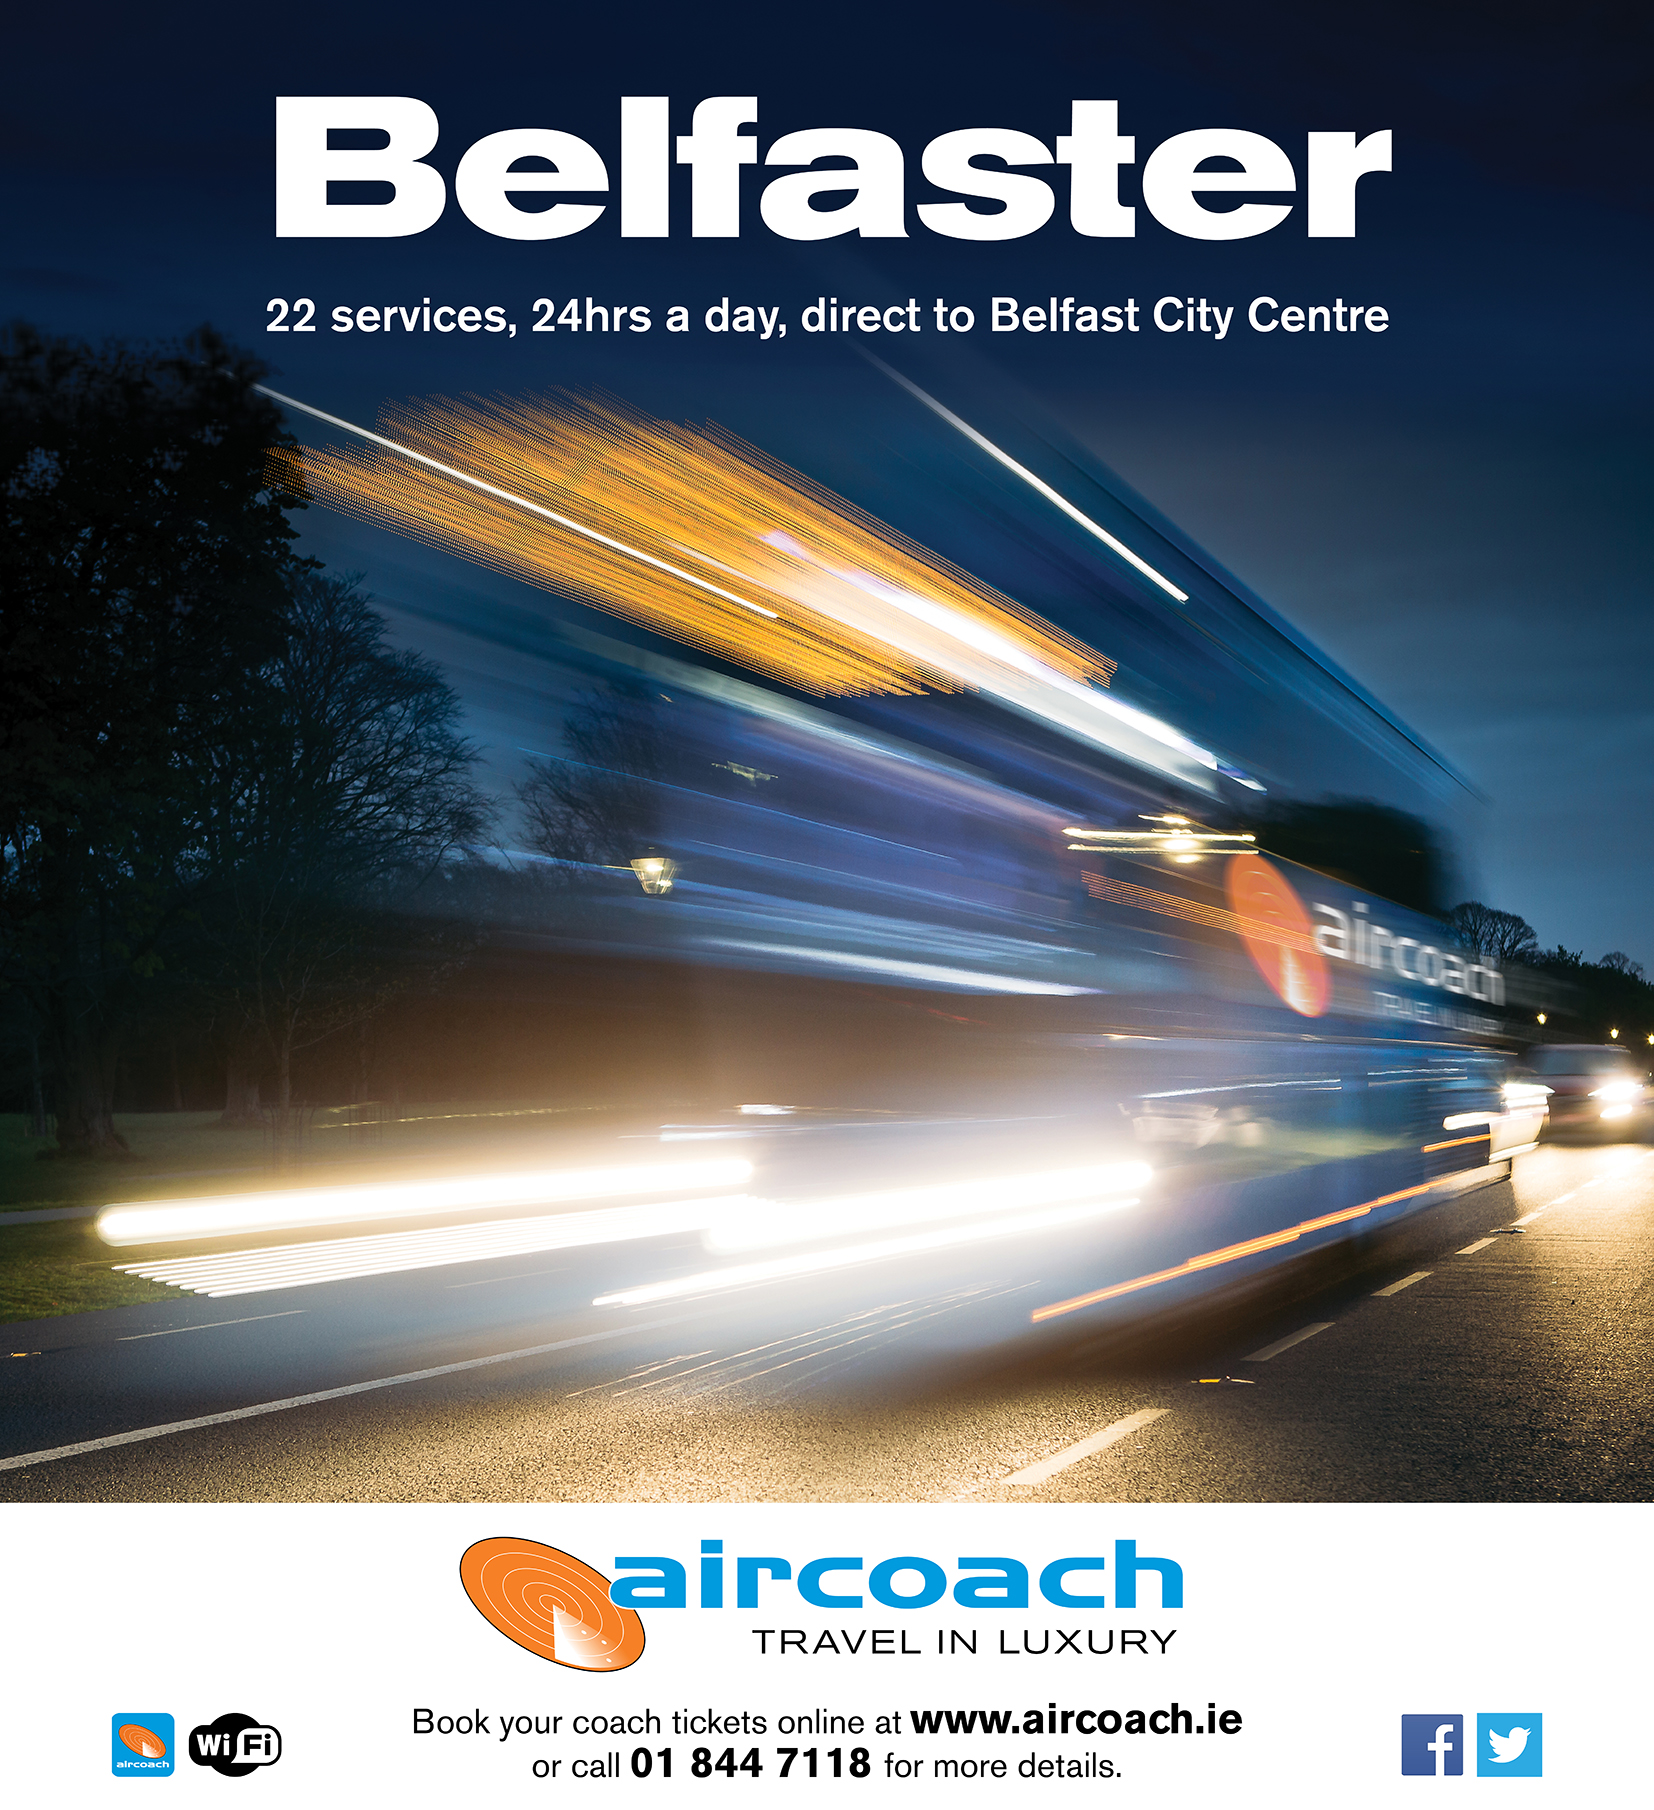 Bubble Digital - Aircoach Belfast